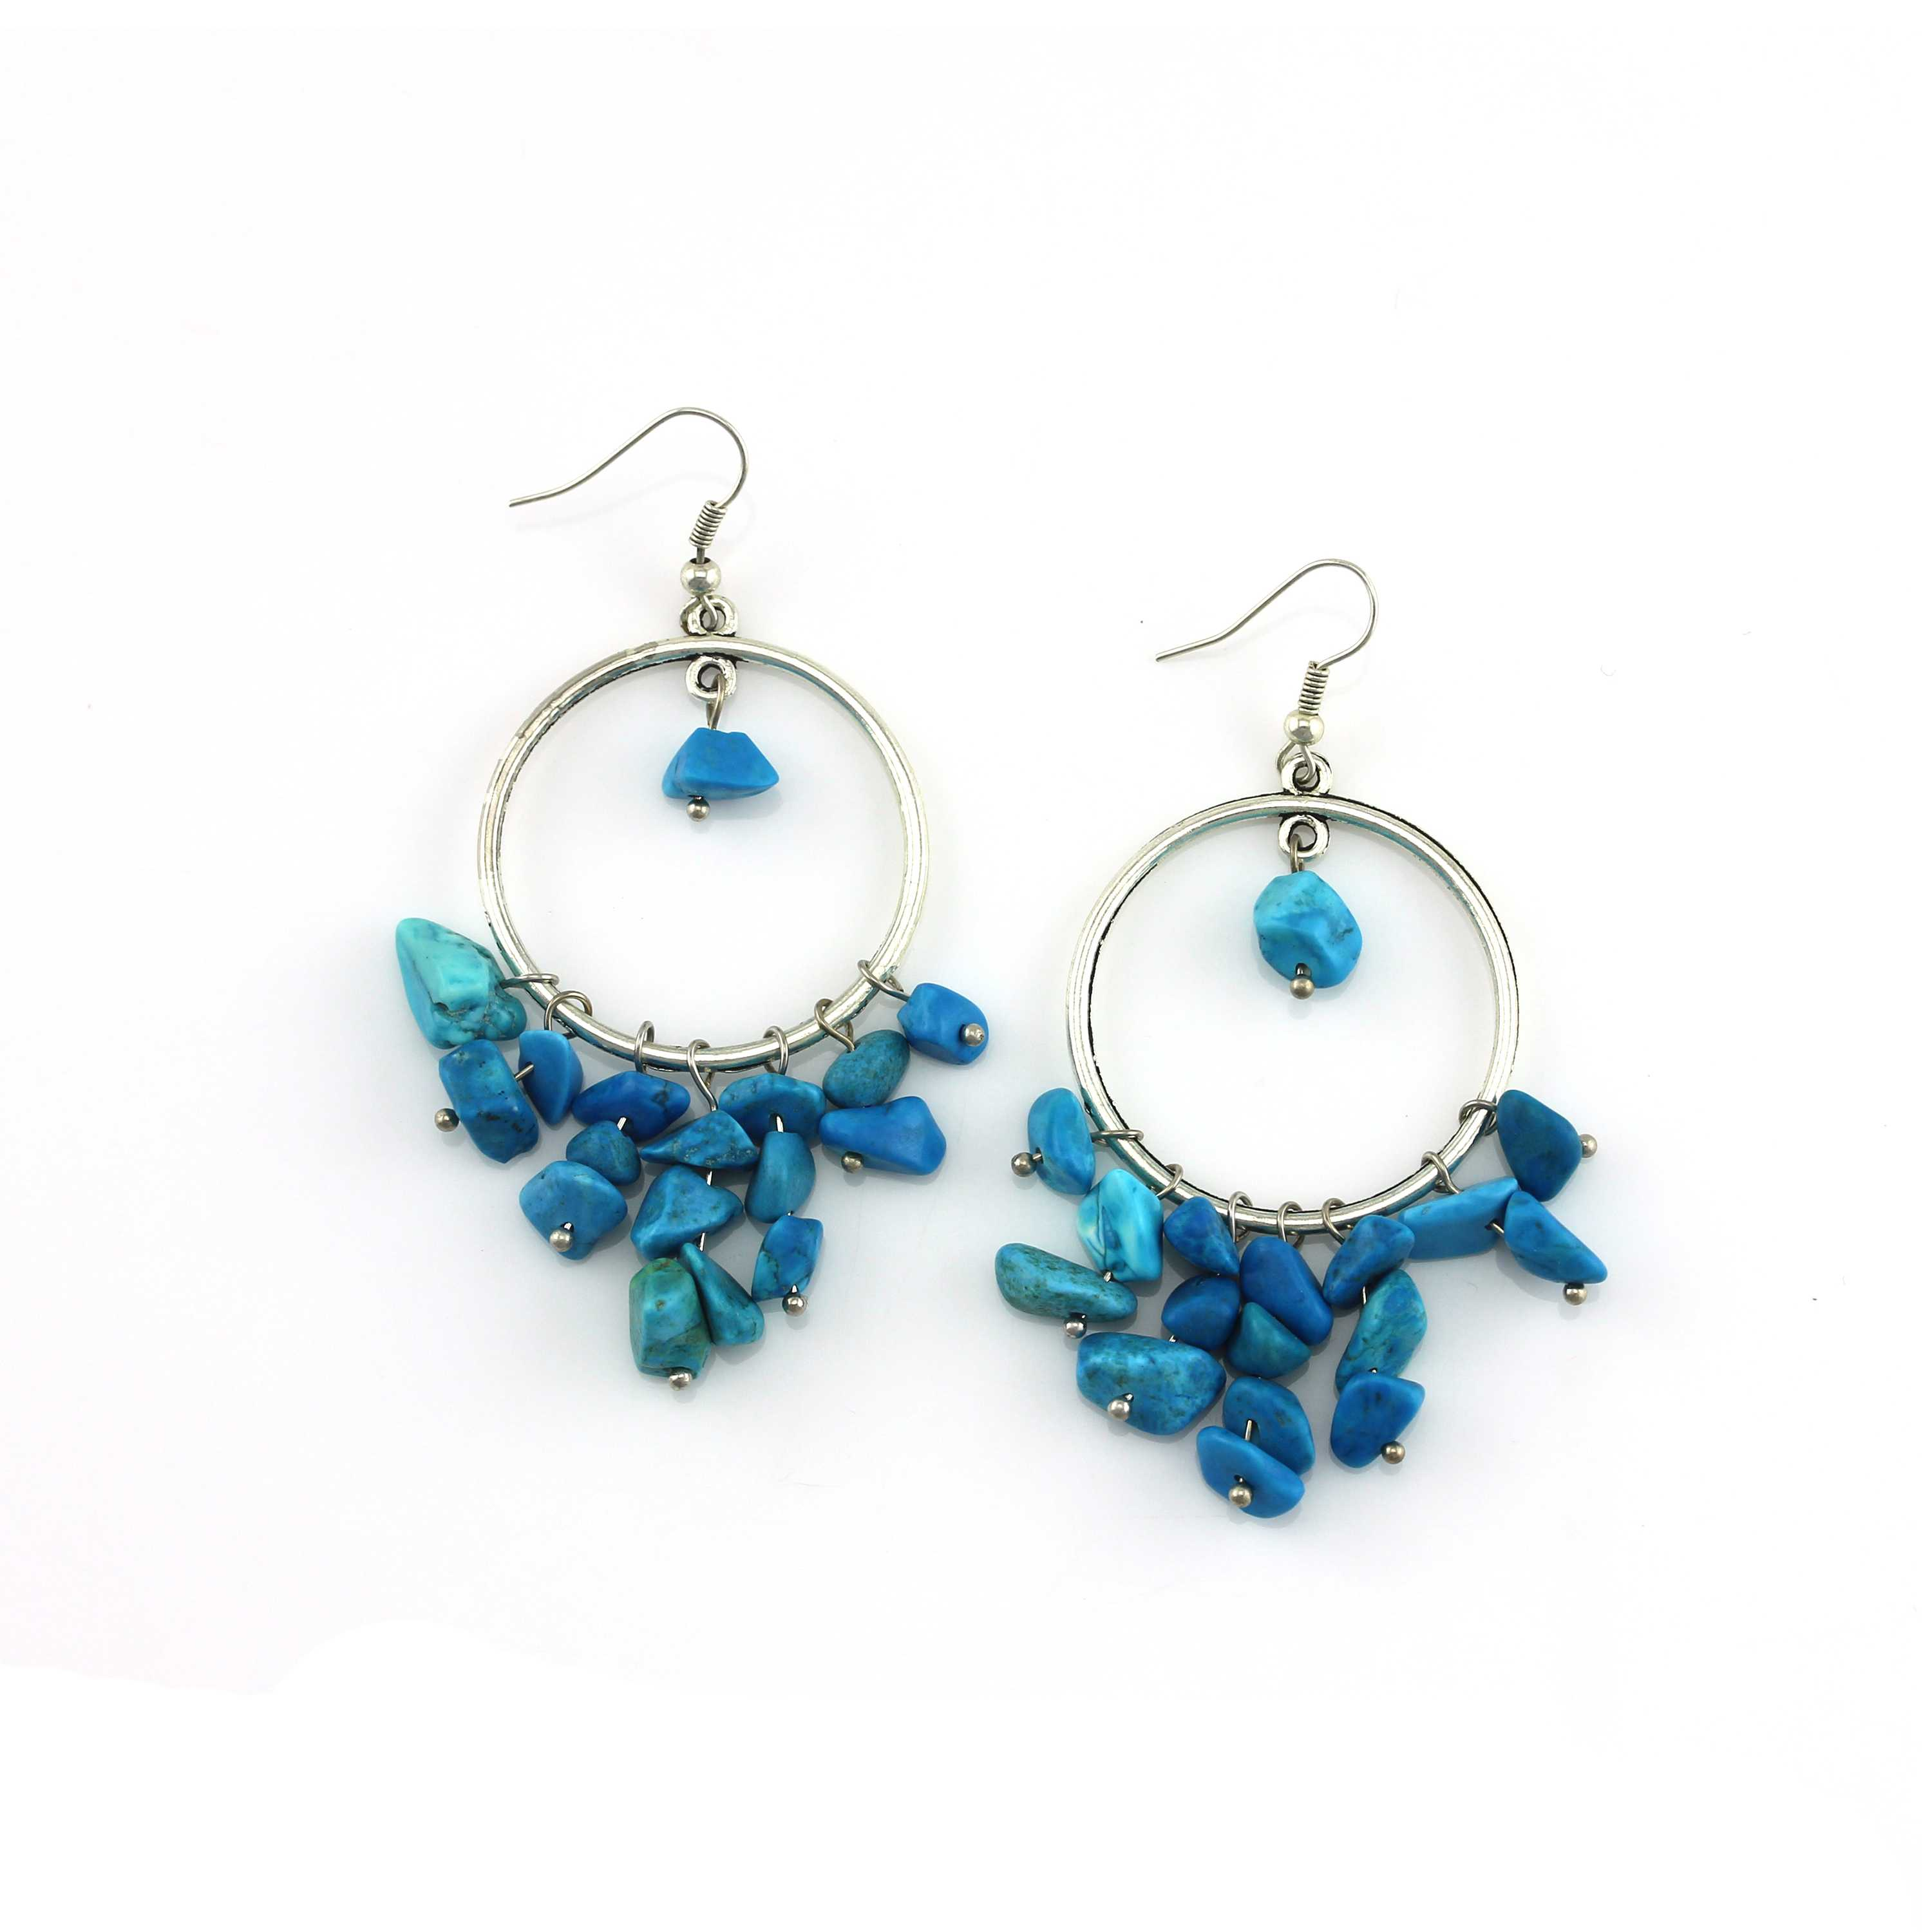 Handmade Blue color Natural stone beads hoop earrings